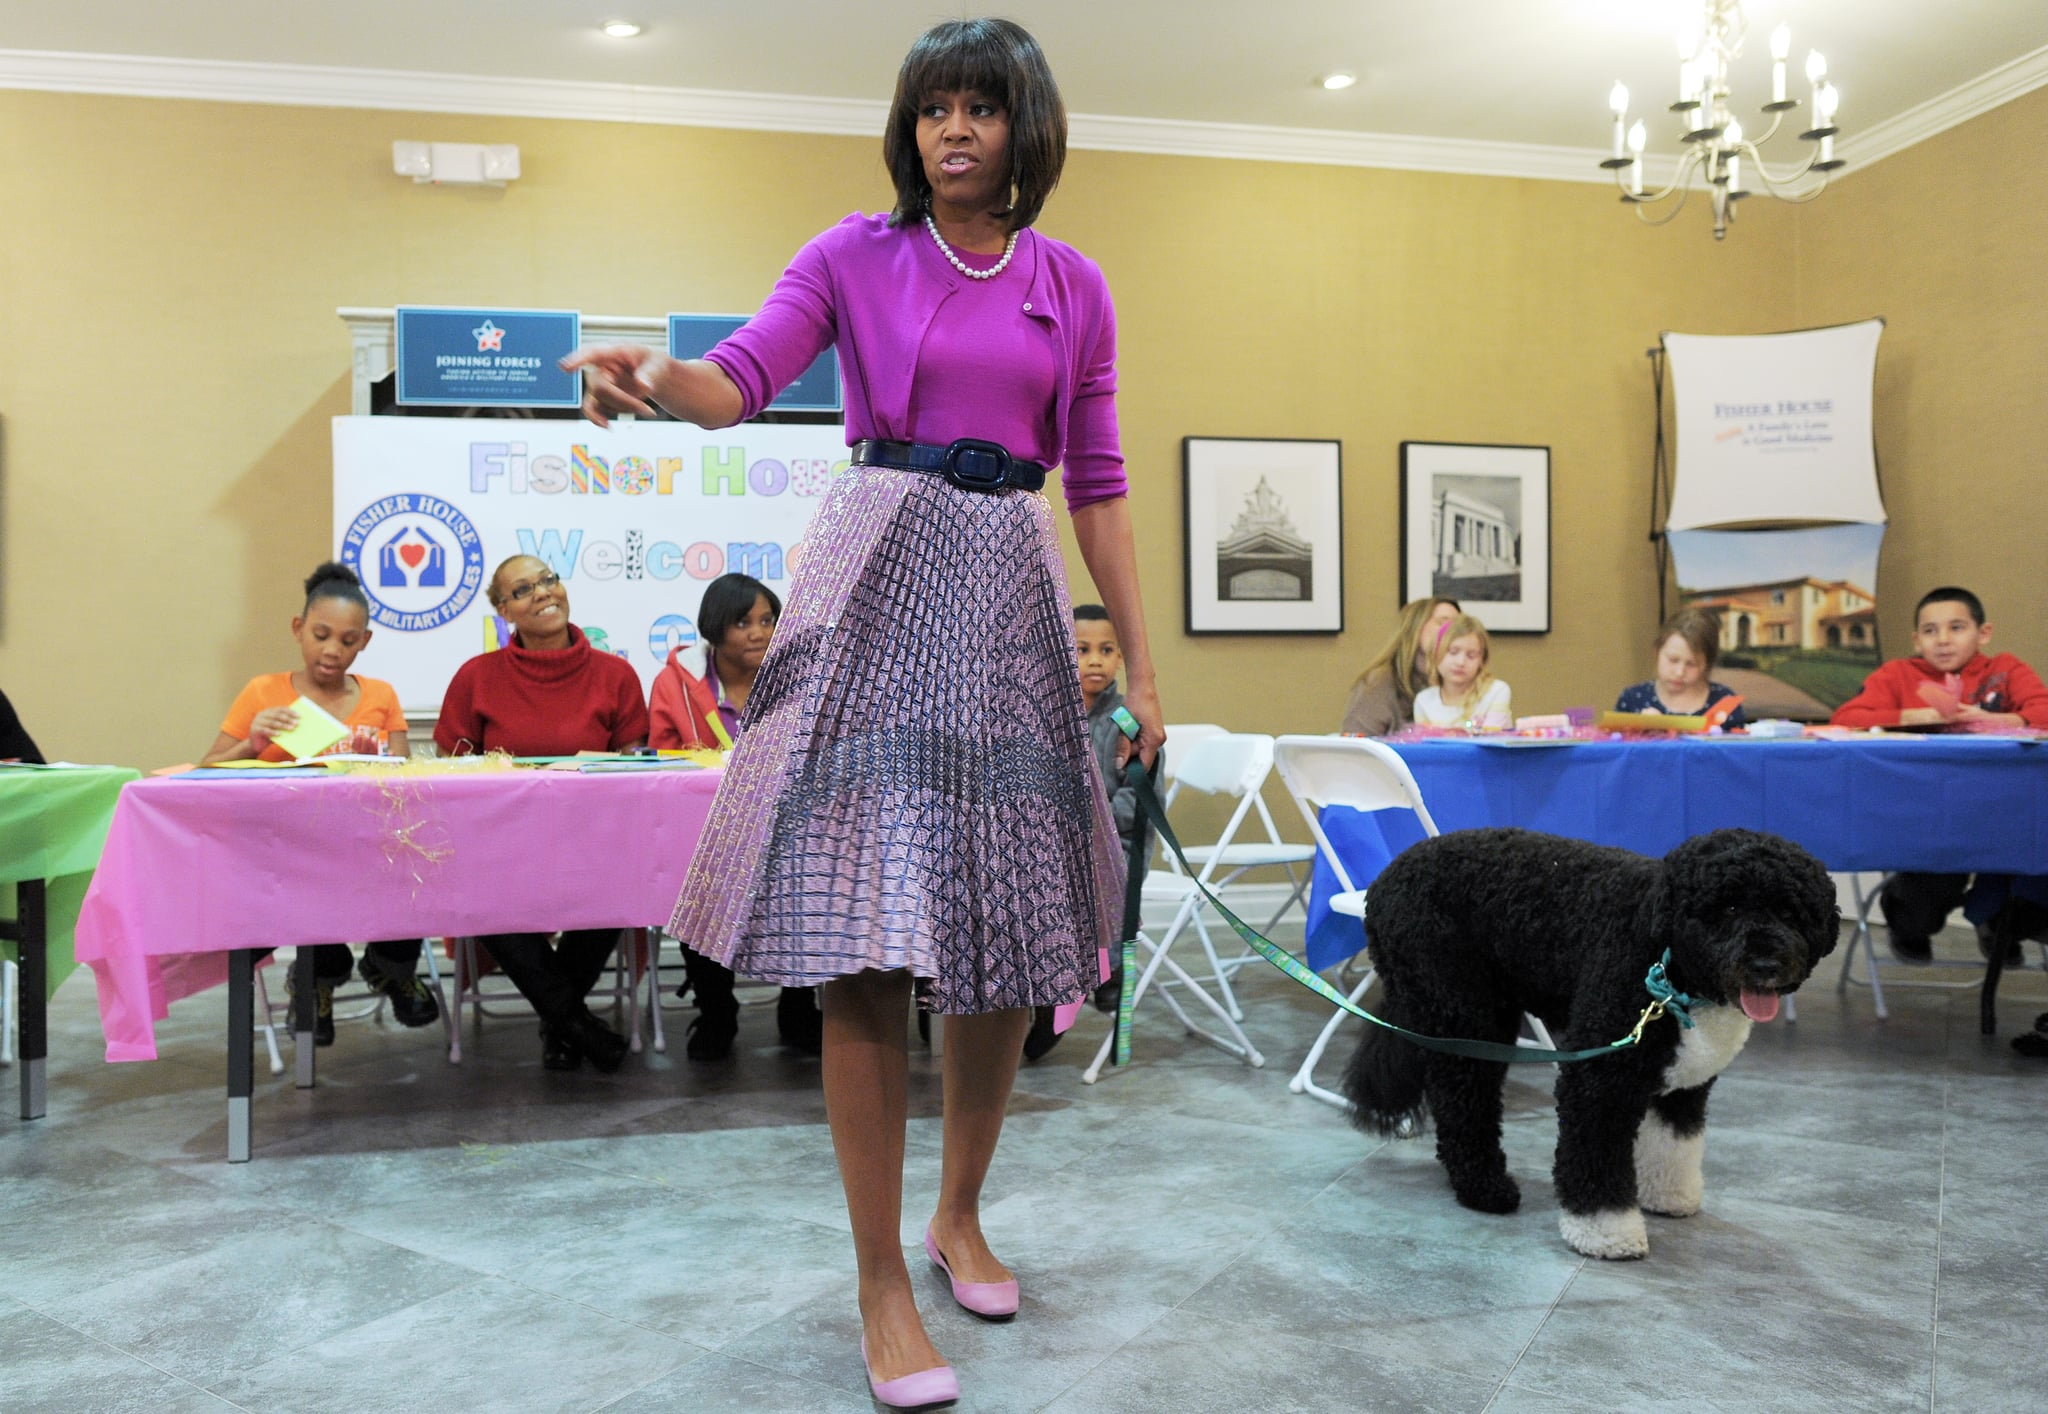 During Easter weekend, she belted a fuchsia-hued J.Crew Collection sweater set with a printed and pleated knee-length skirt, then finished off the entire look with sweet pastel pink flats.